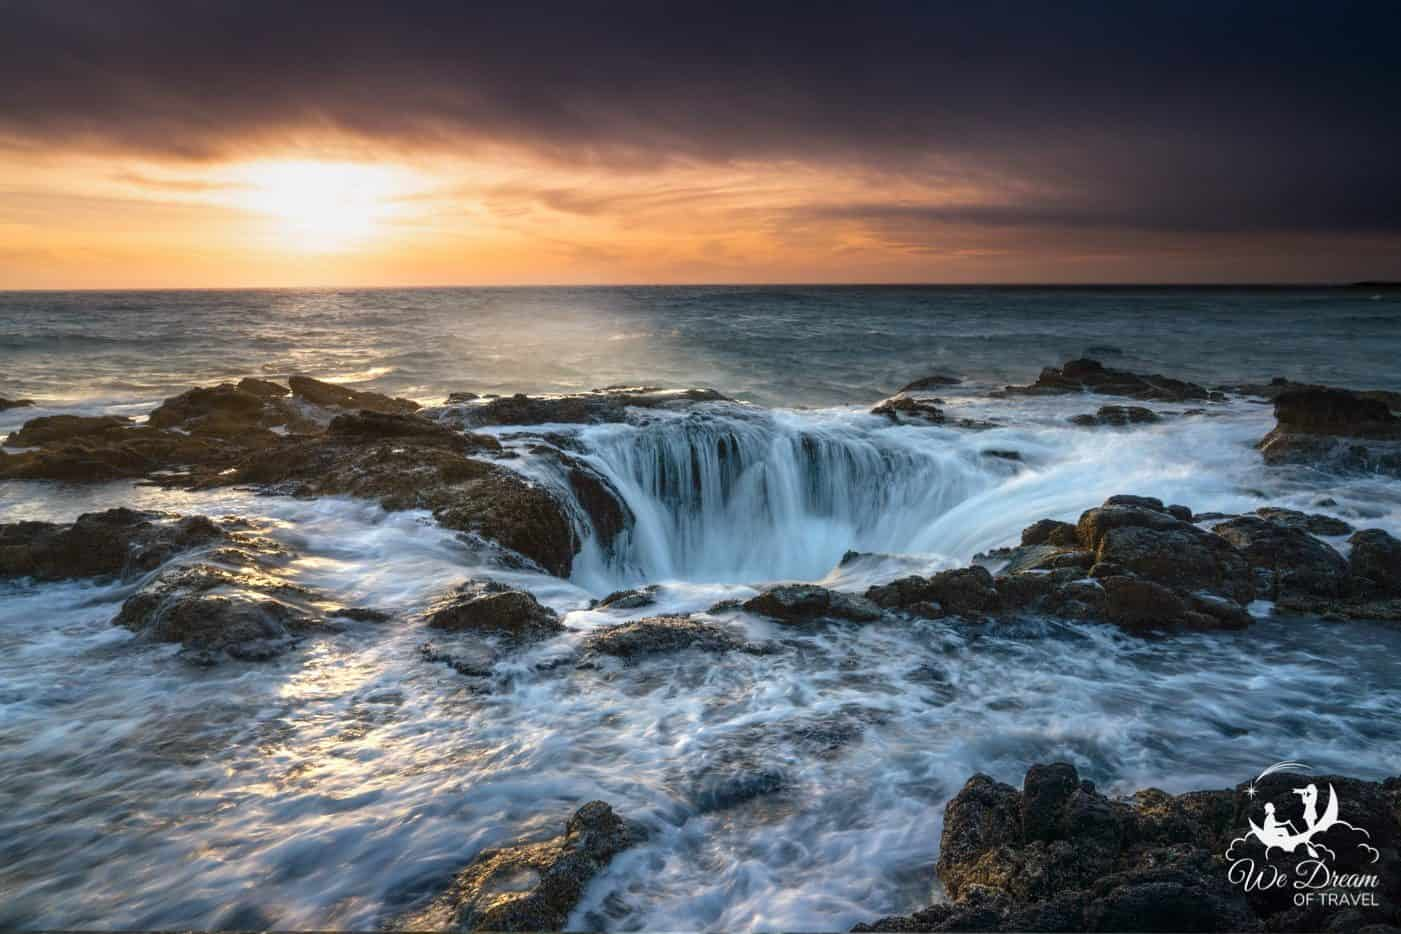 Dramatic sunset photography of the incredible Thors Well seascape in Oregon.